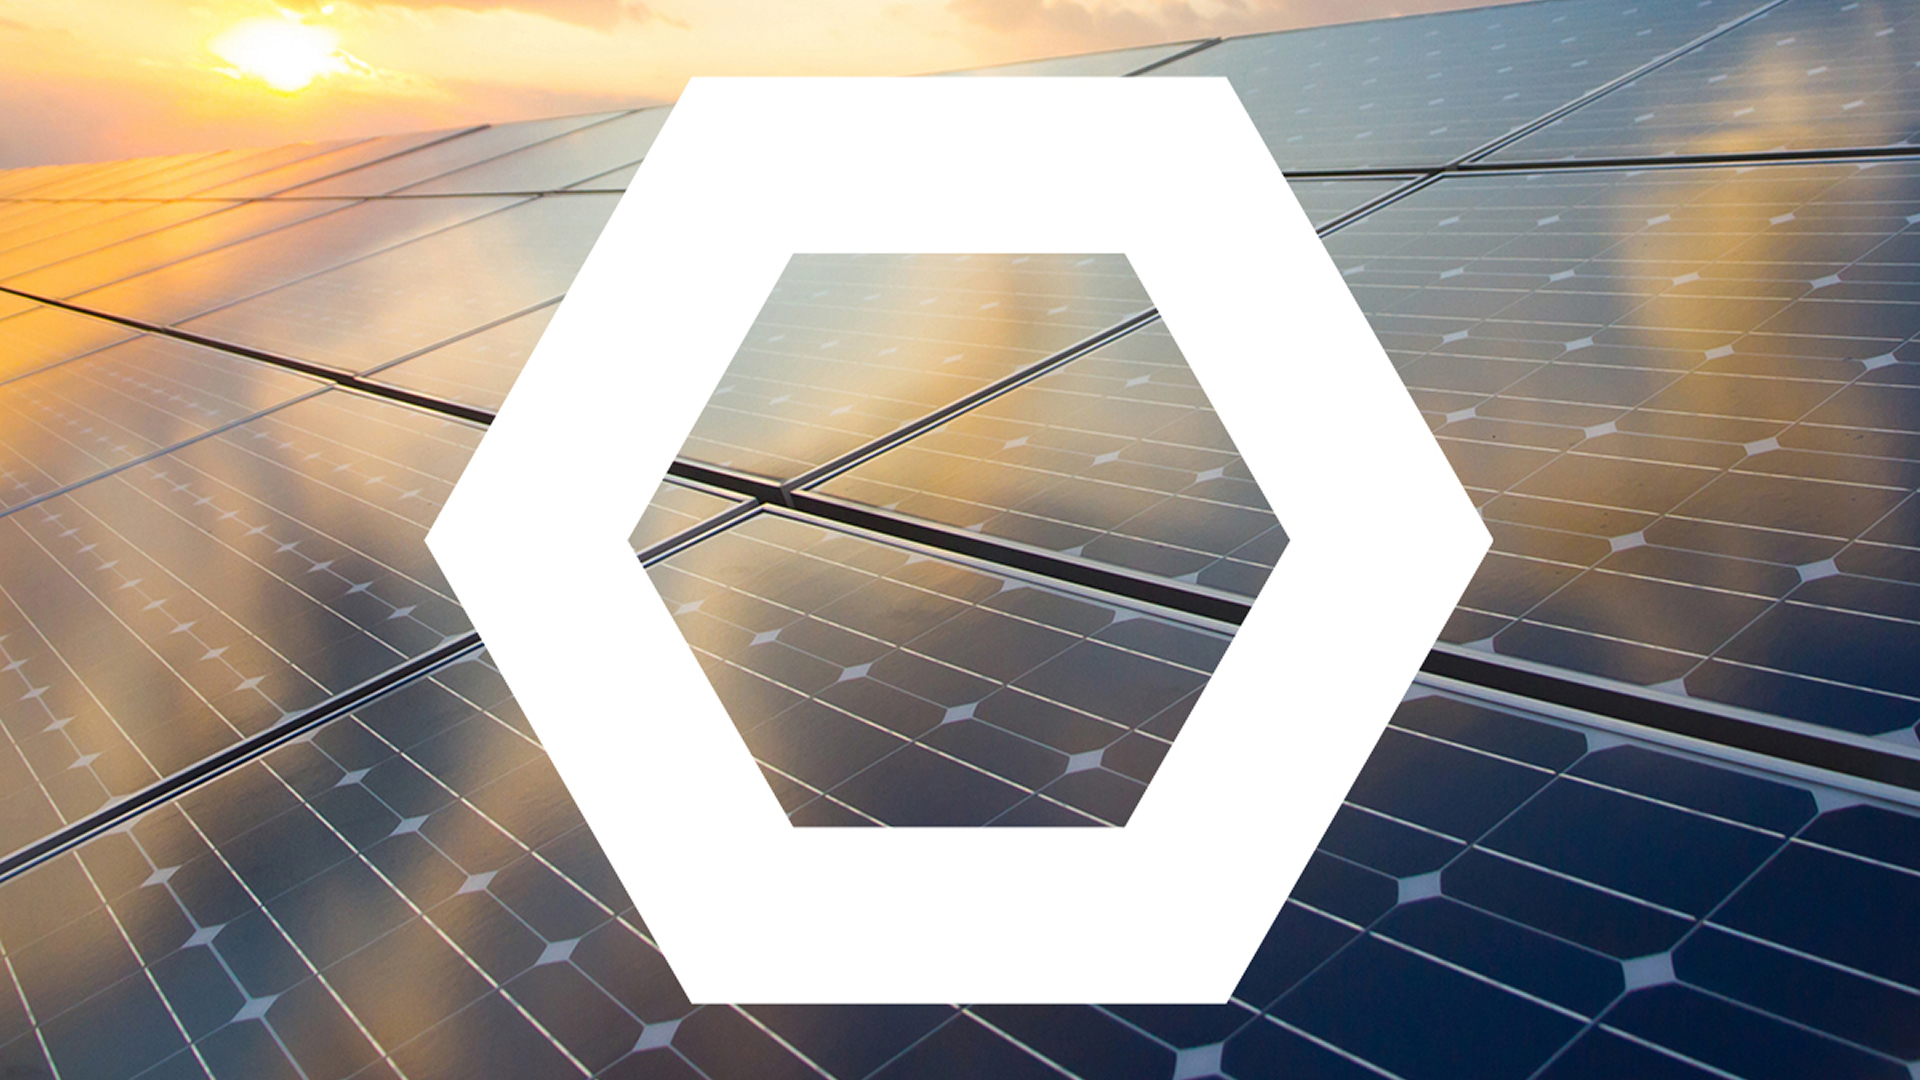 Energy - Renewables for a sustainable future